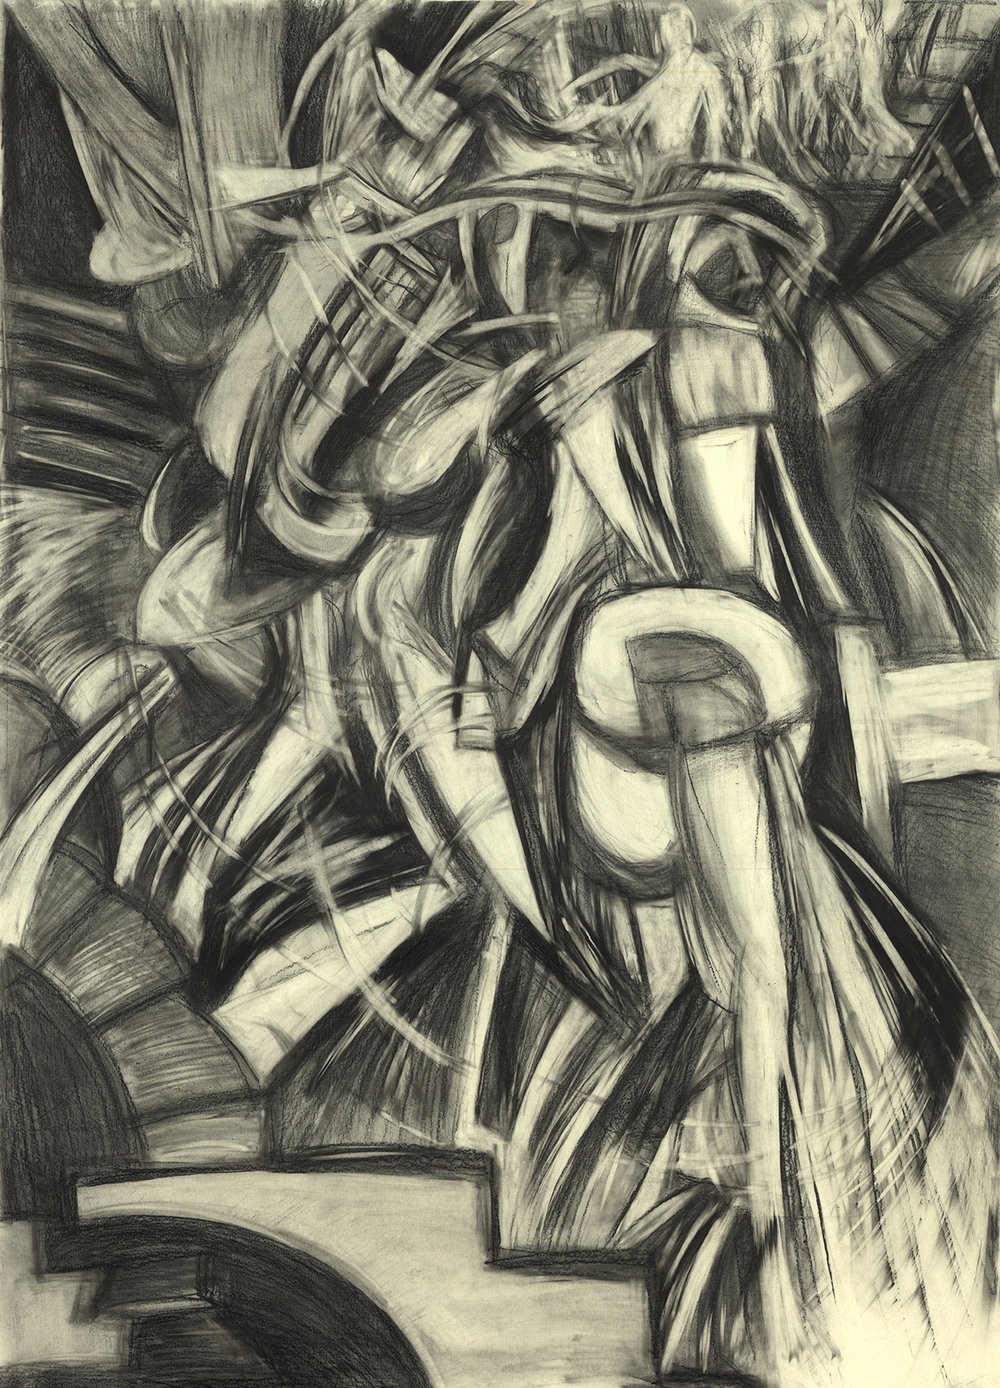 Study: Duchamp Nude Descending a Staircase No.2